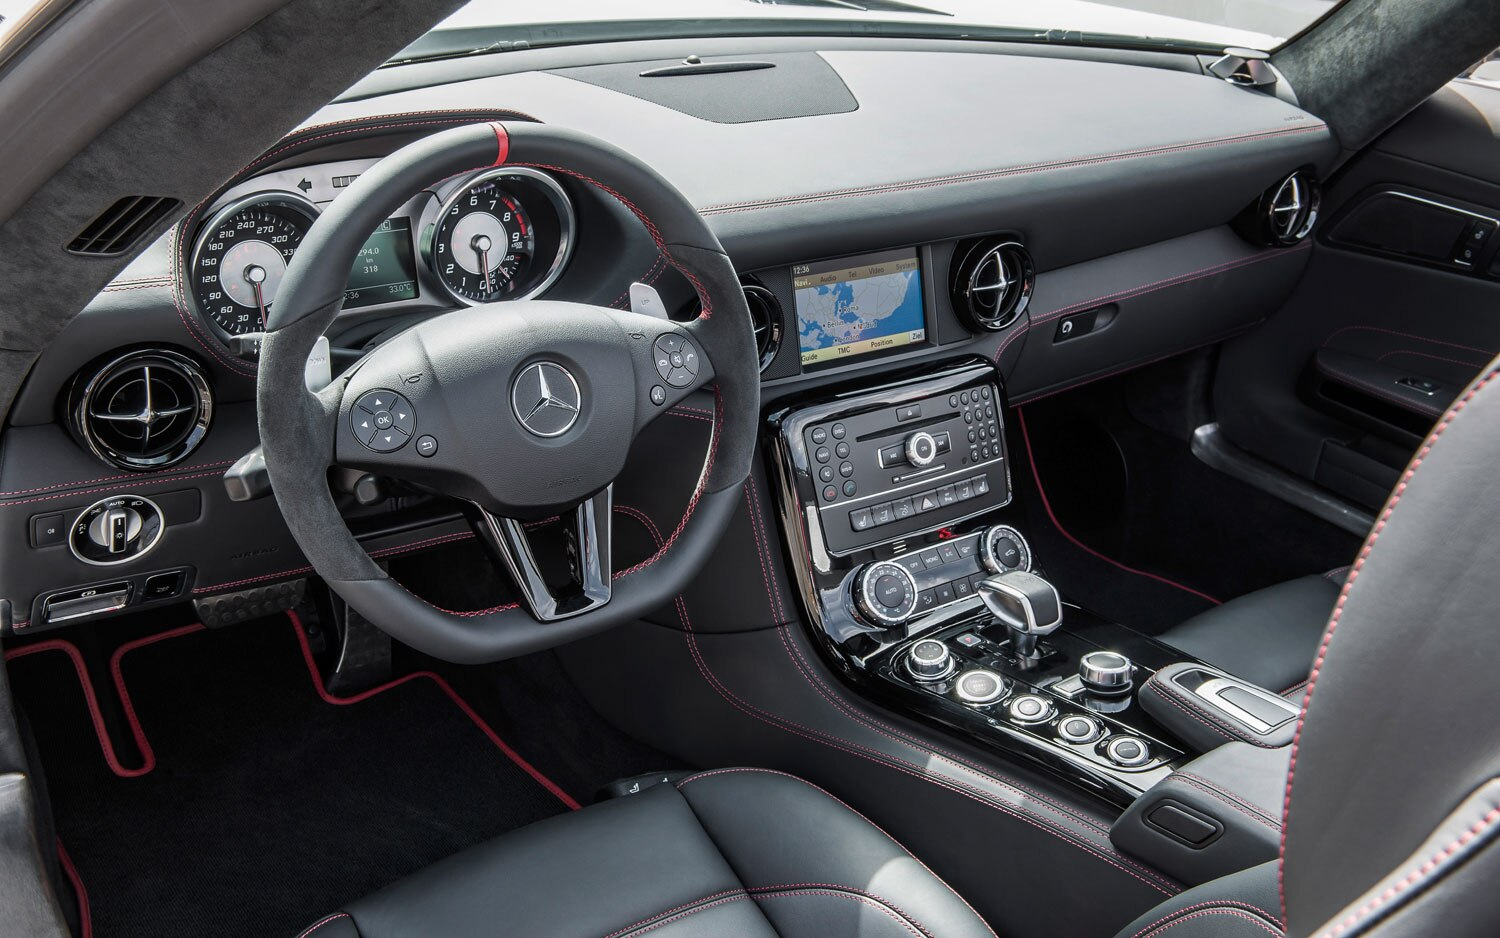 Alfa img showing gt sls amg gt roadster interior - Show More